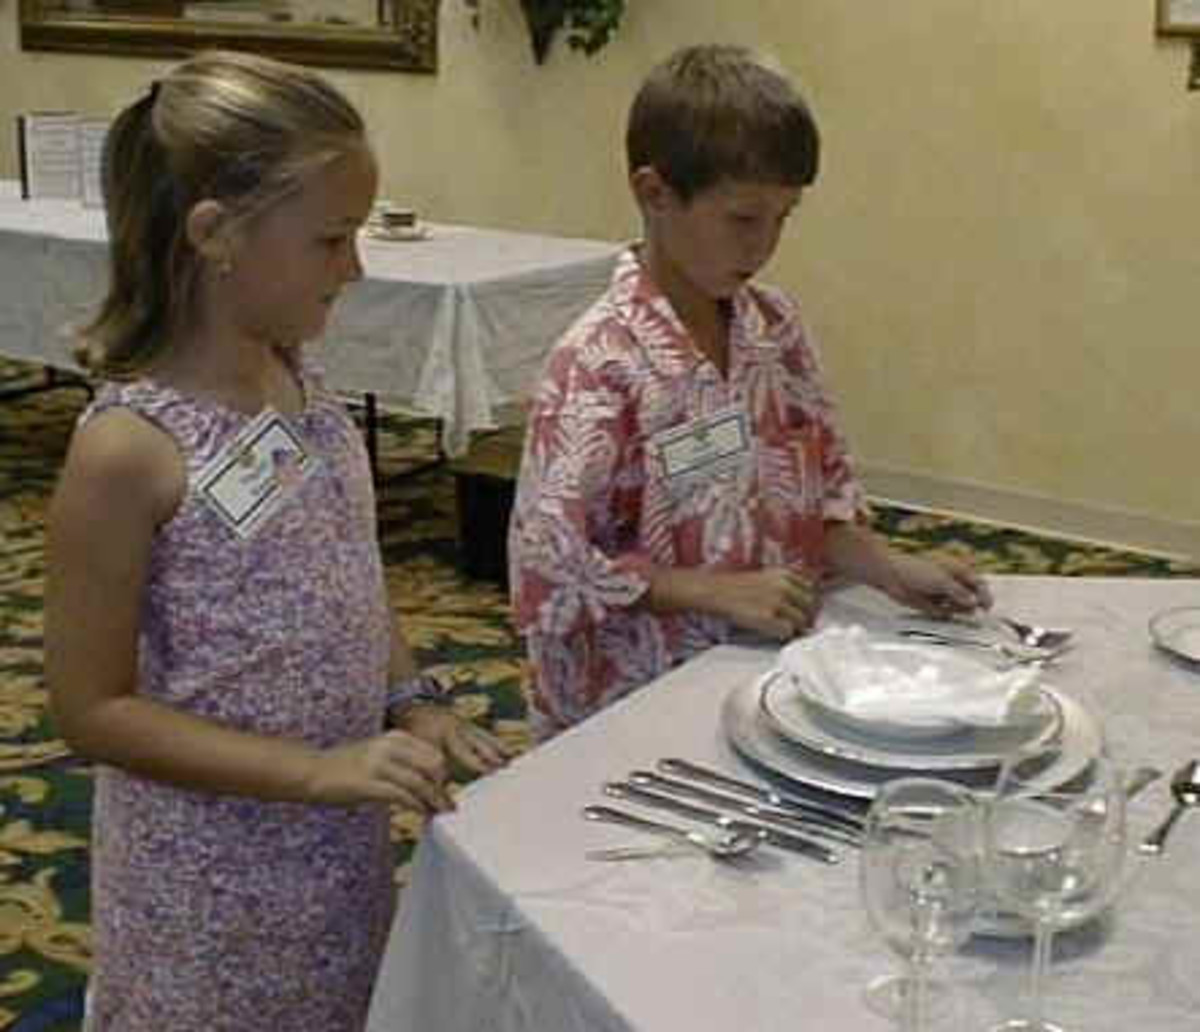 Children attend etiquette seminars to brush up on their social skills.